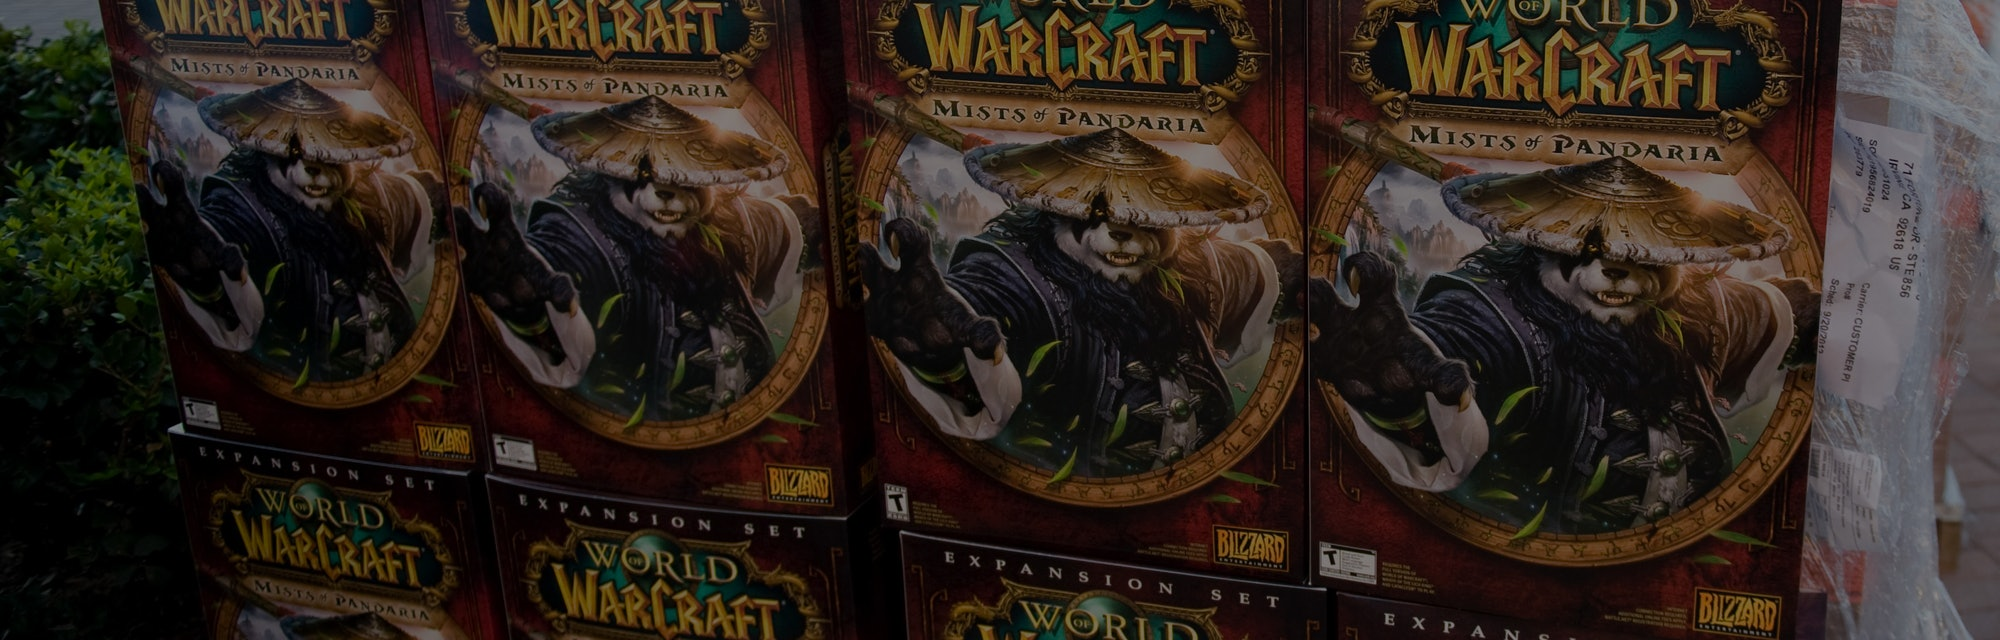 """IRVINE, CA - SEPTEMBER 24: Boxes of  """"World of Warcraft: Mists of Pandaria"""" are stacked for the rele..."""